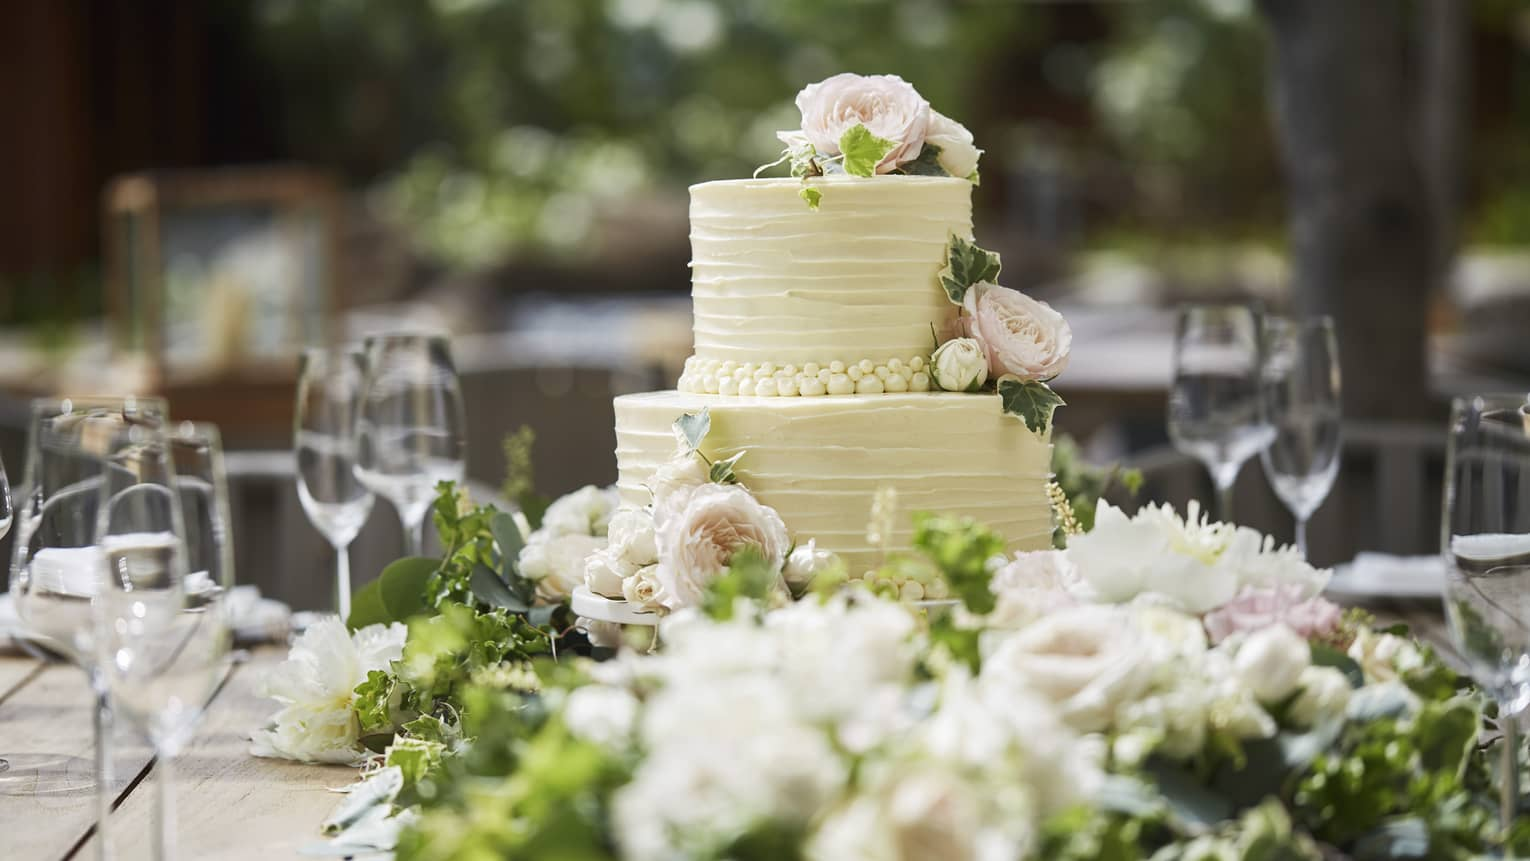 Two-tiered white wedding cake on banquet table with wine glasses, flowers